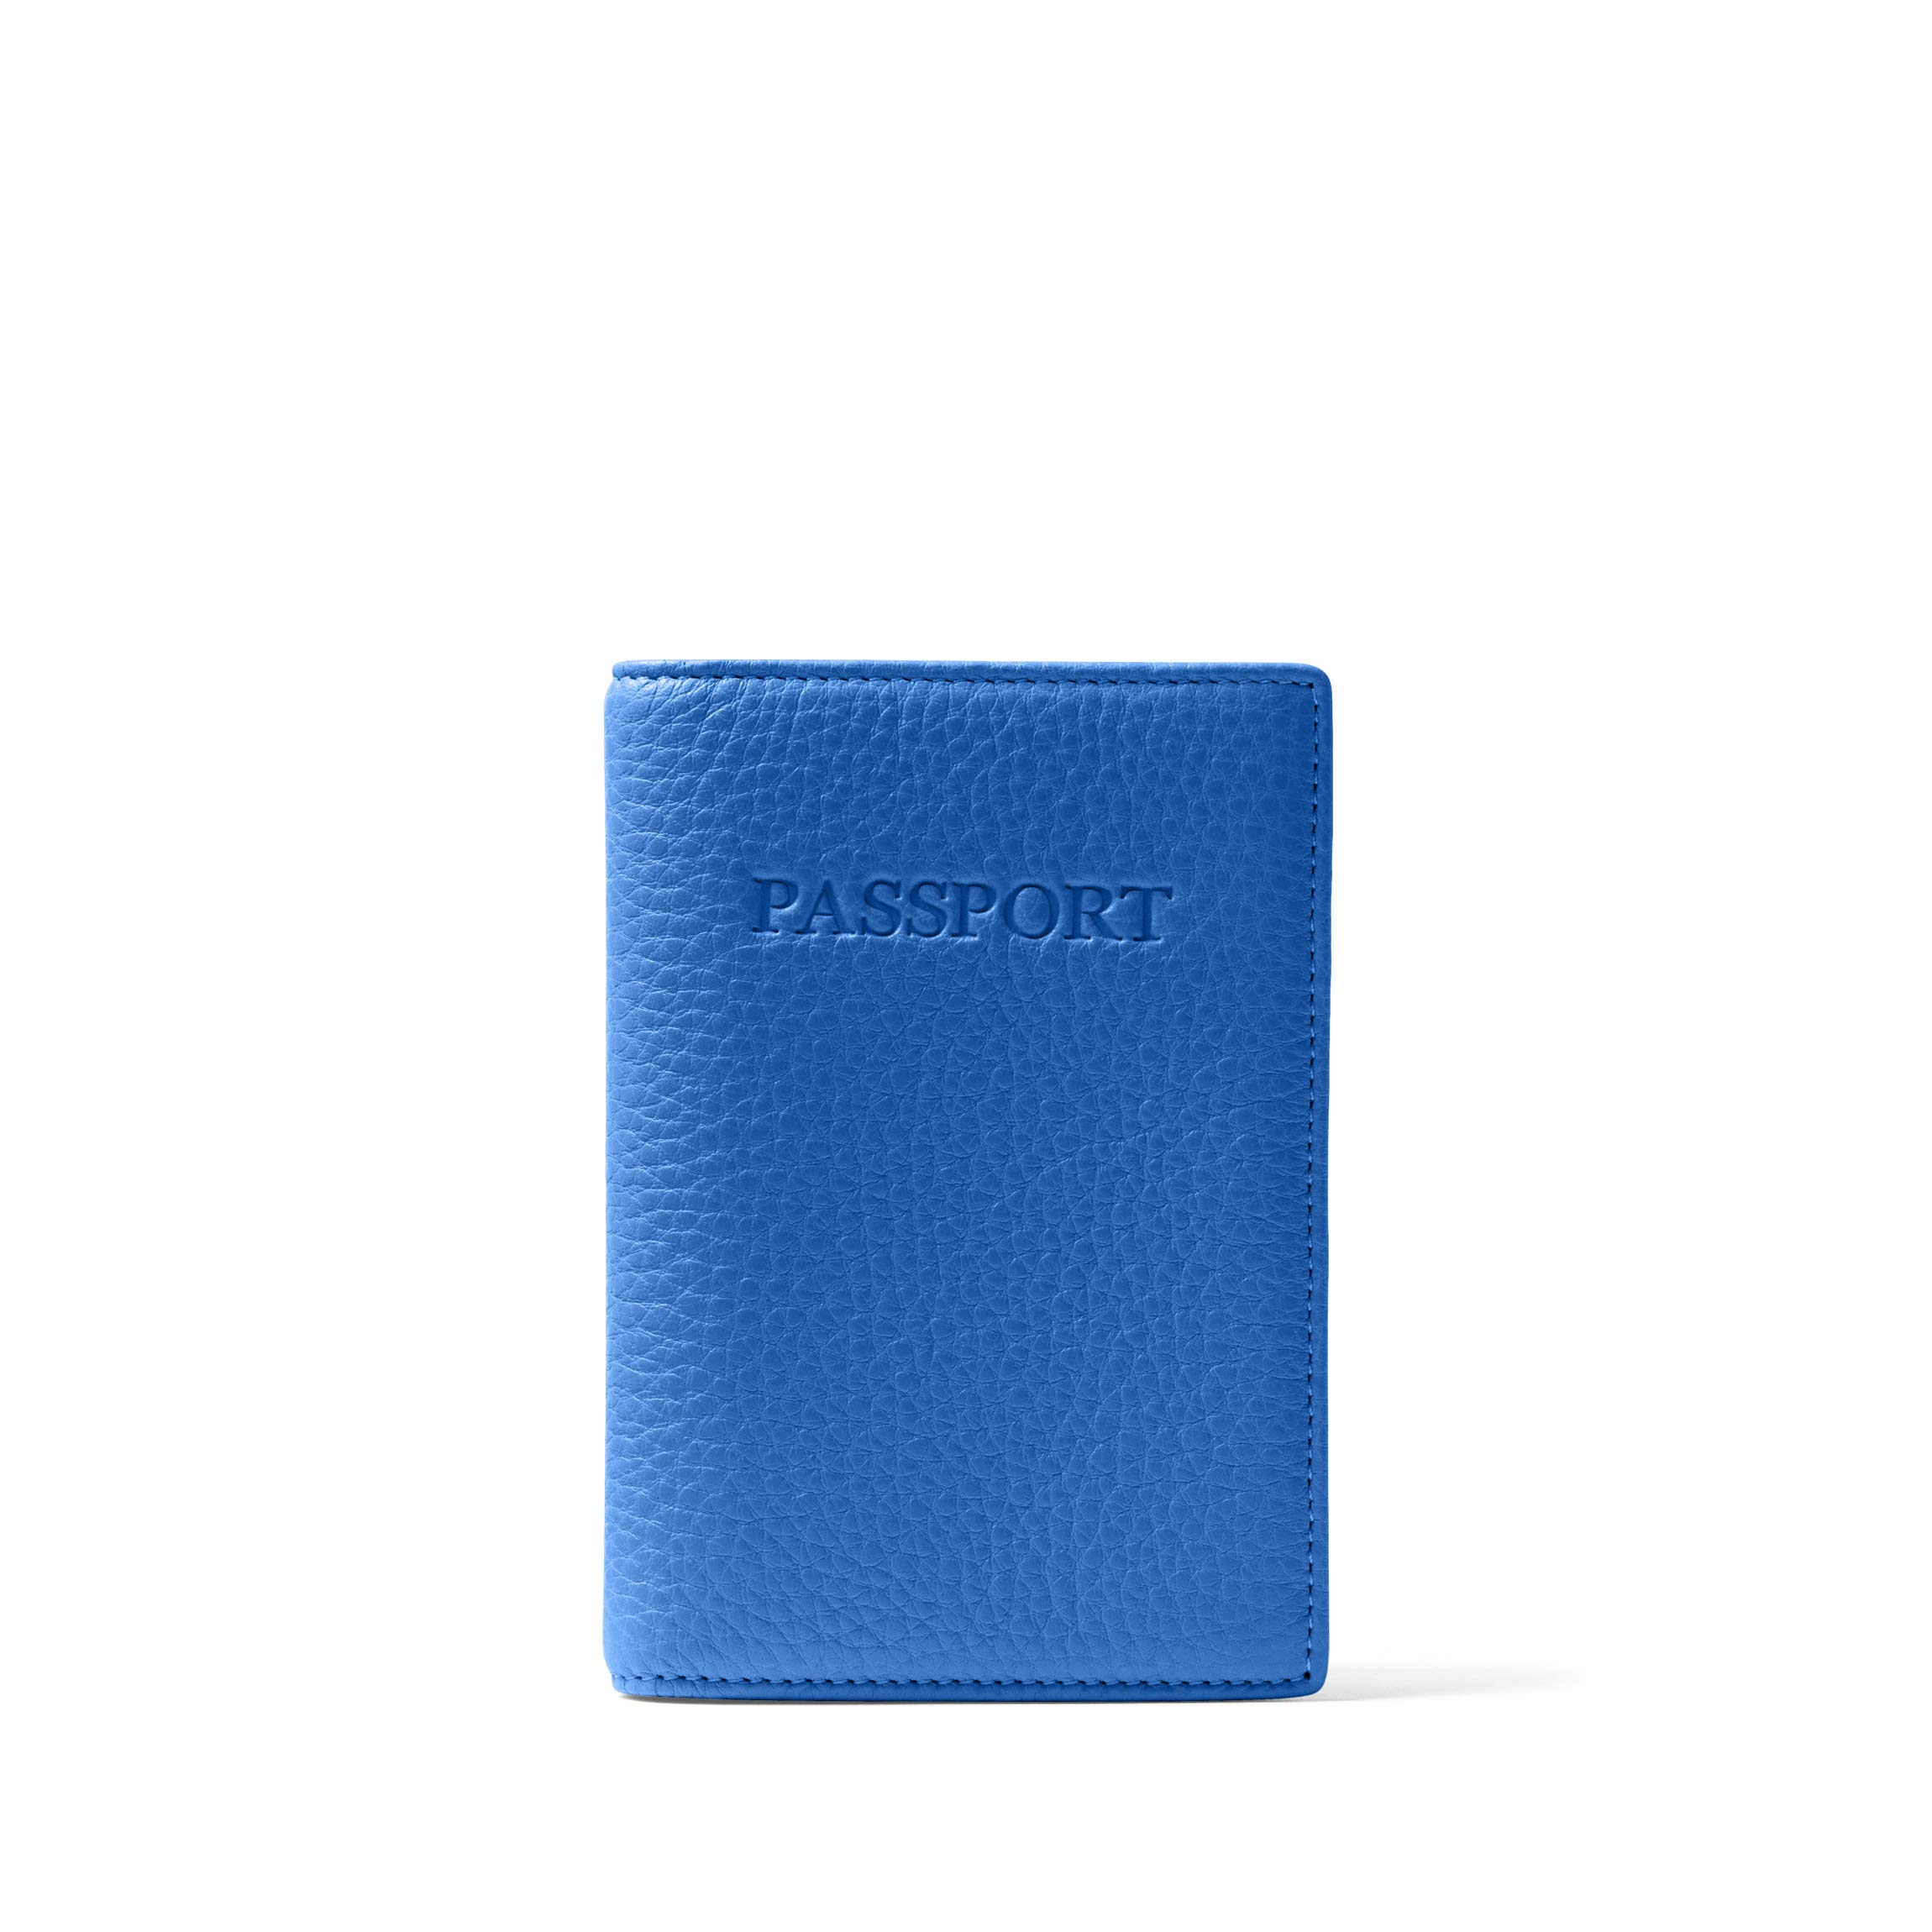 Standard Passport Cover - Full Grain Leather - Cobalt (blue)